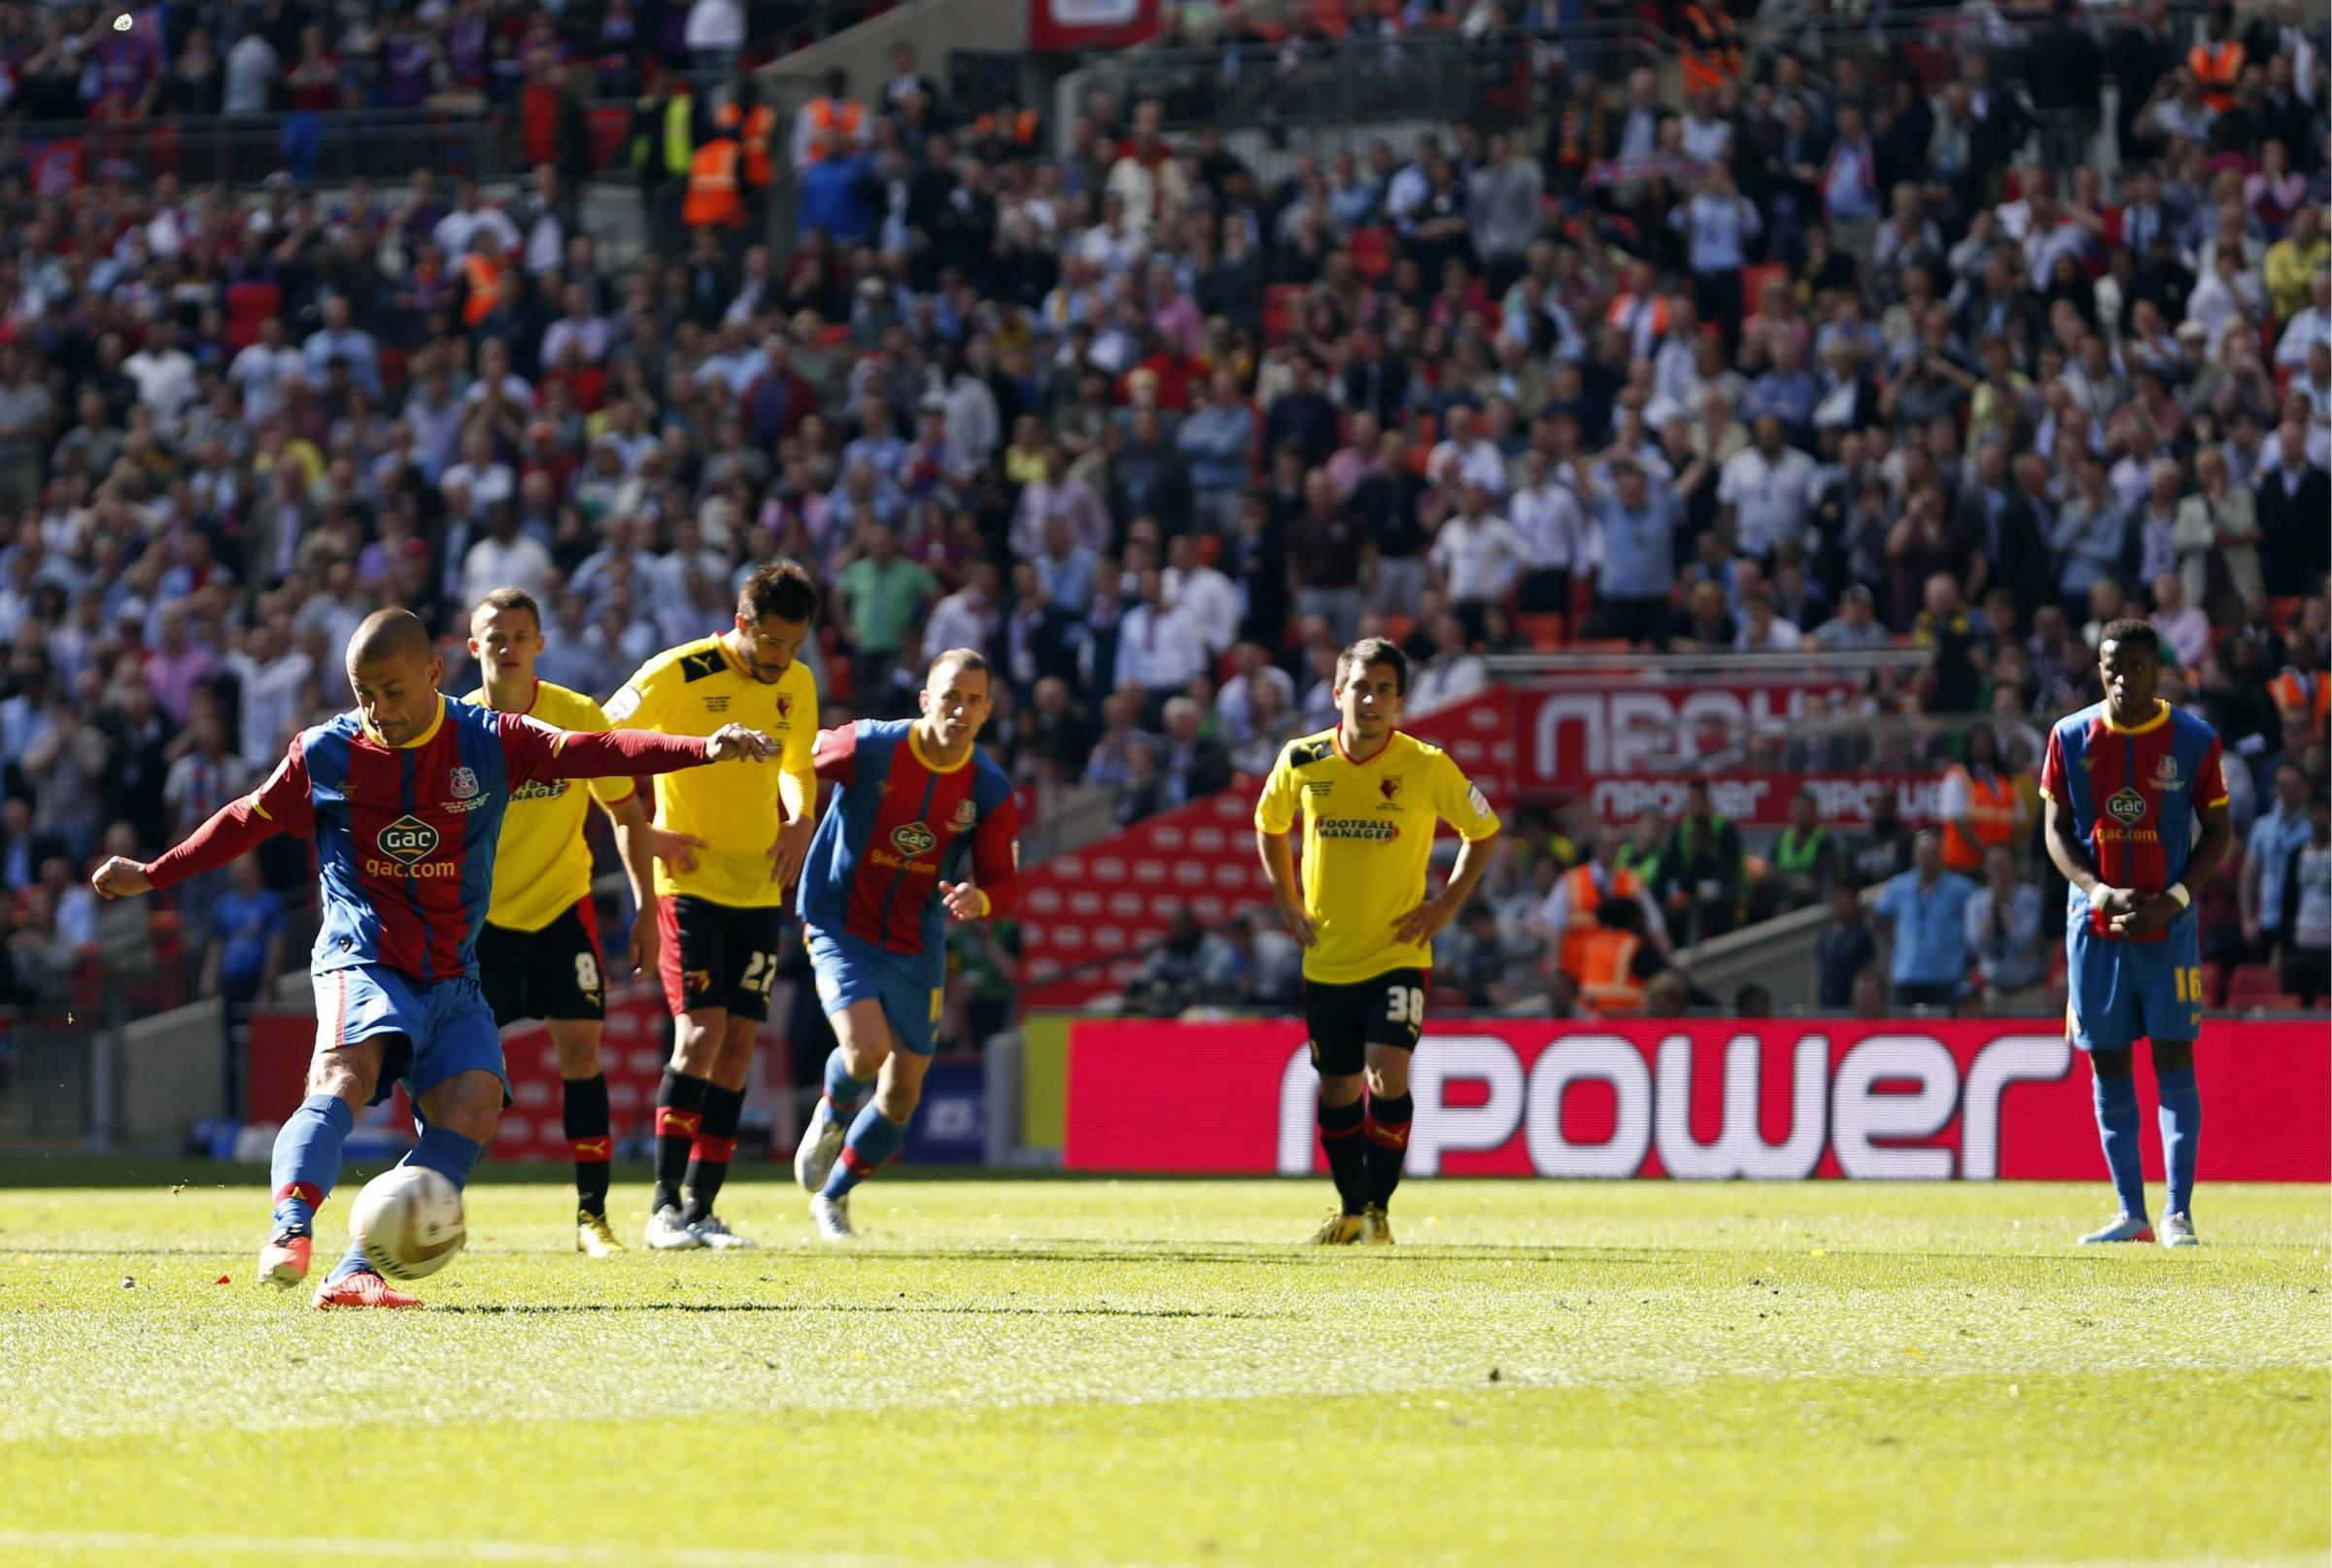 Kevin Phillips scoring against his first professional club in last season's Championship Play-Off final. Picture: Action Images